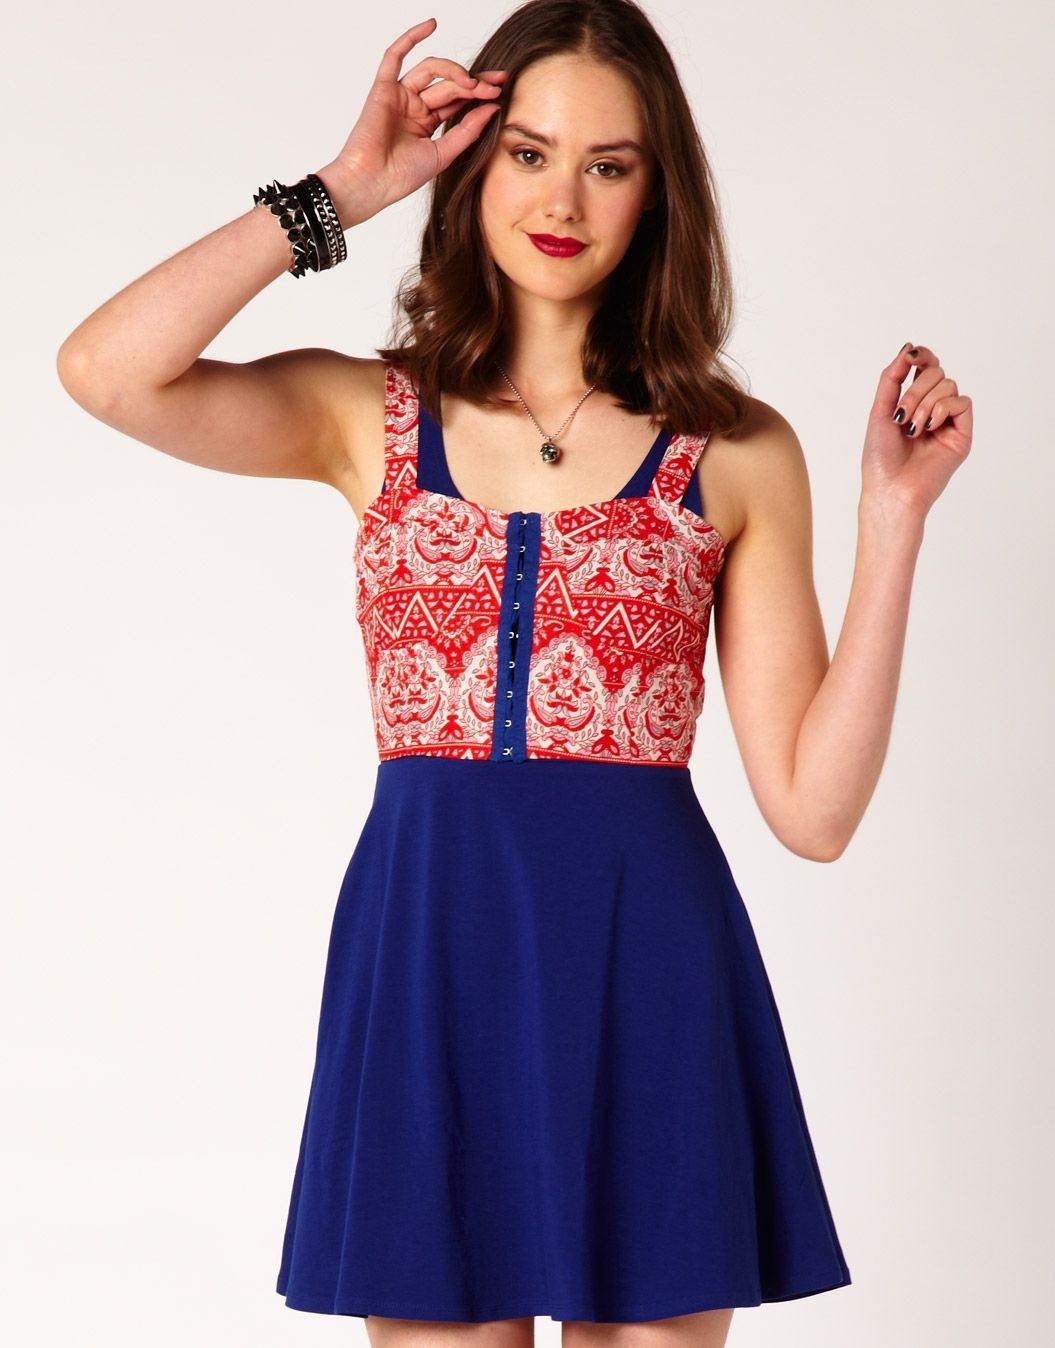 Glassons - Printed Bustier | Fashion clothes women ...